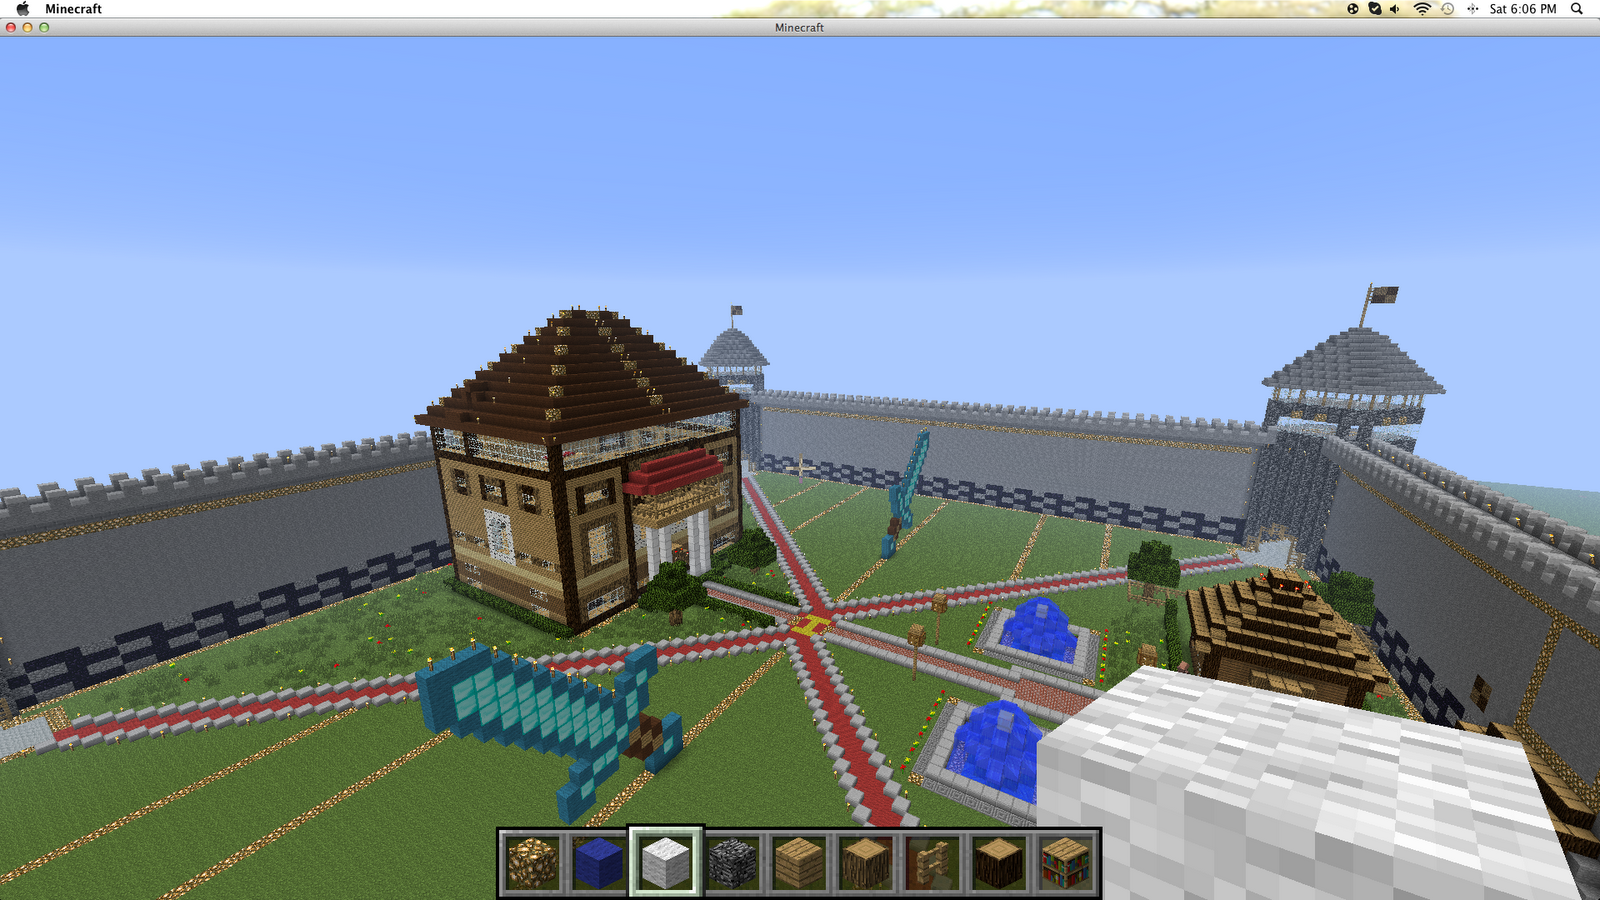 Biggest Minecraft House In The World 2014 plain biggest house in the world minecraft nicest ever intended